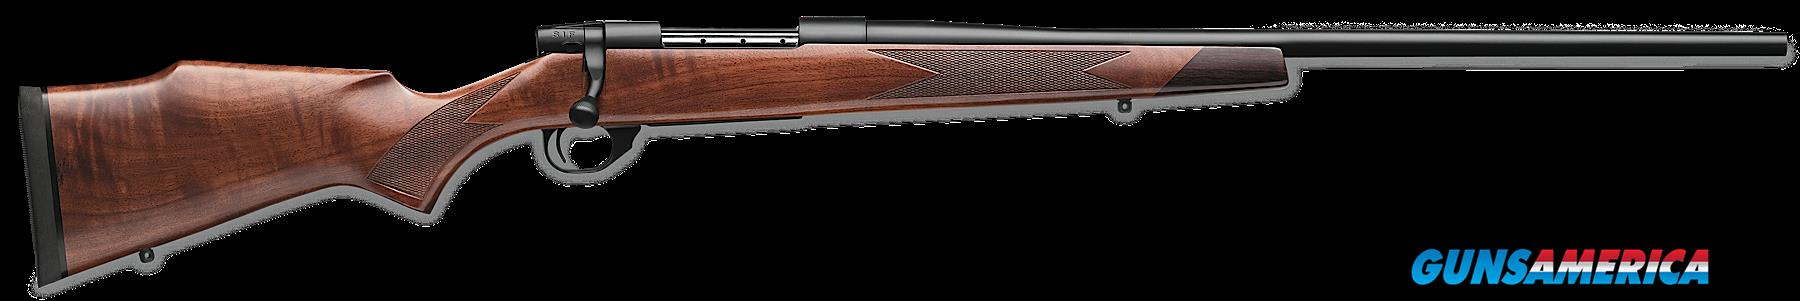 "Weatherby VDT257WR4O Vanguard Series 2 Sporter Bolt 257 Weatherby Magnum 24"" 3+1 Walnut Stk Blued  Guns > Rifles > W Misc Rifles"